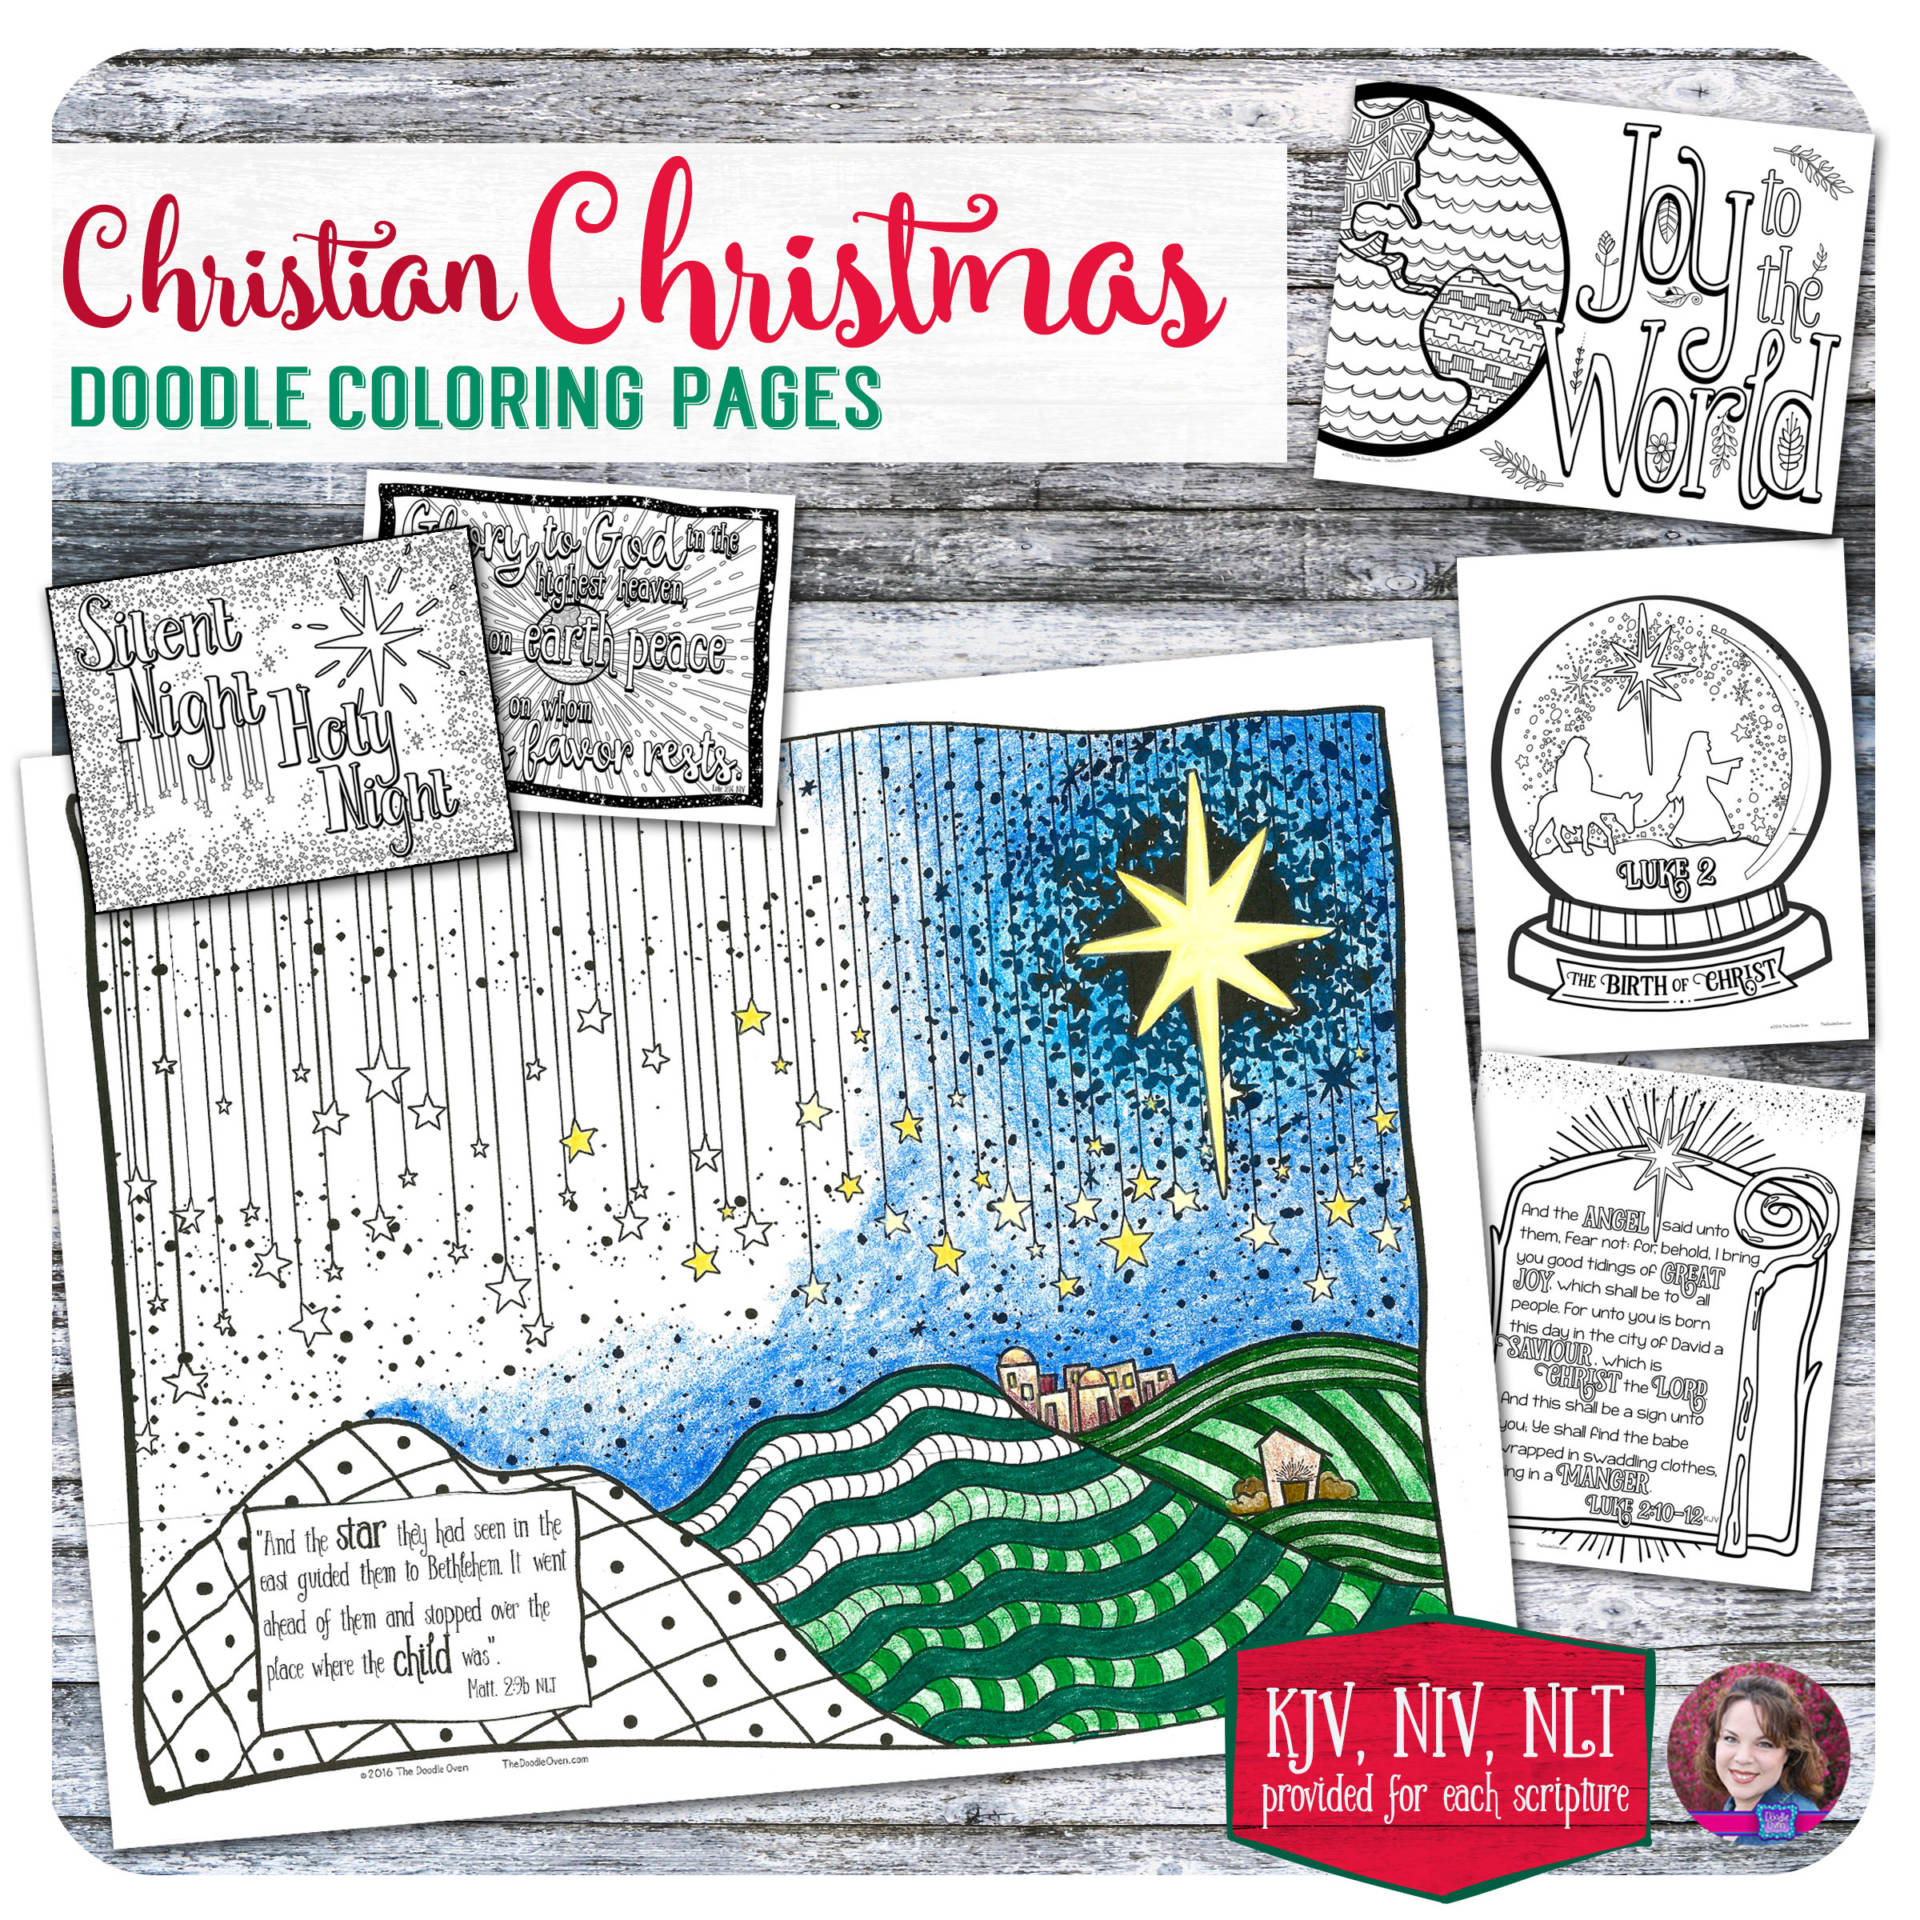 Christian Christmas Doodle Coloring Pages – 6 designs – Heidi Babin